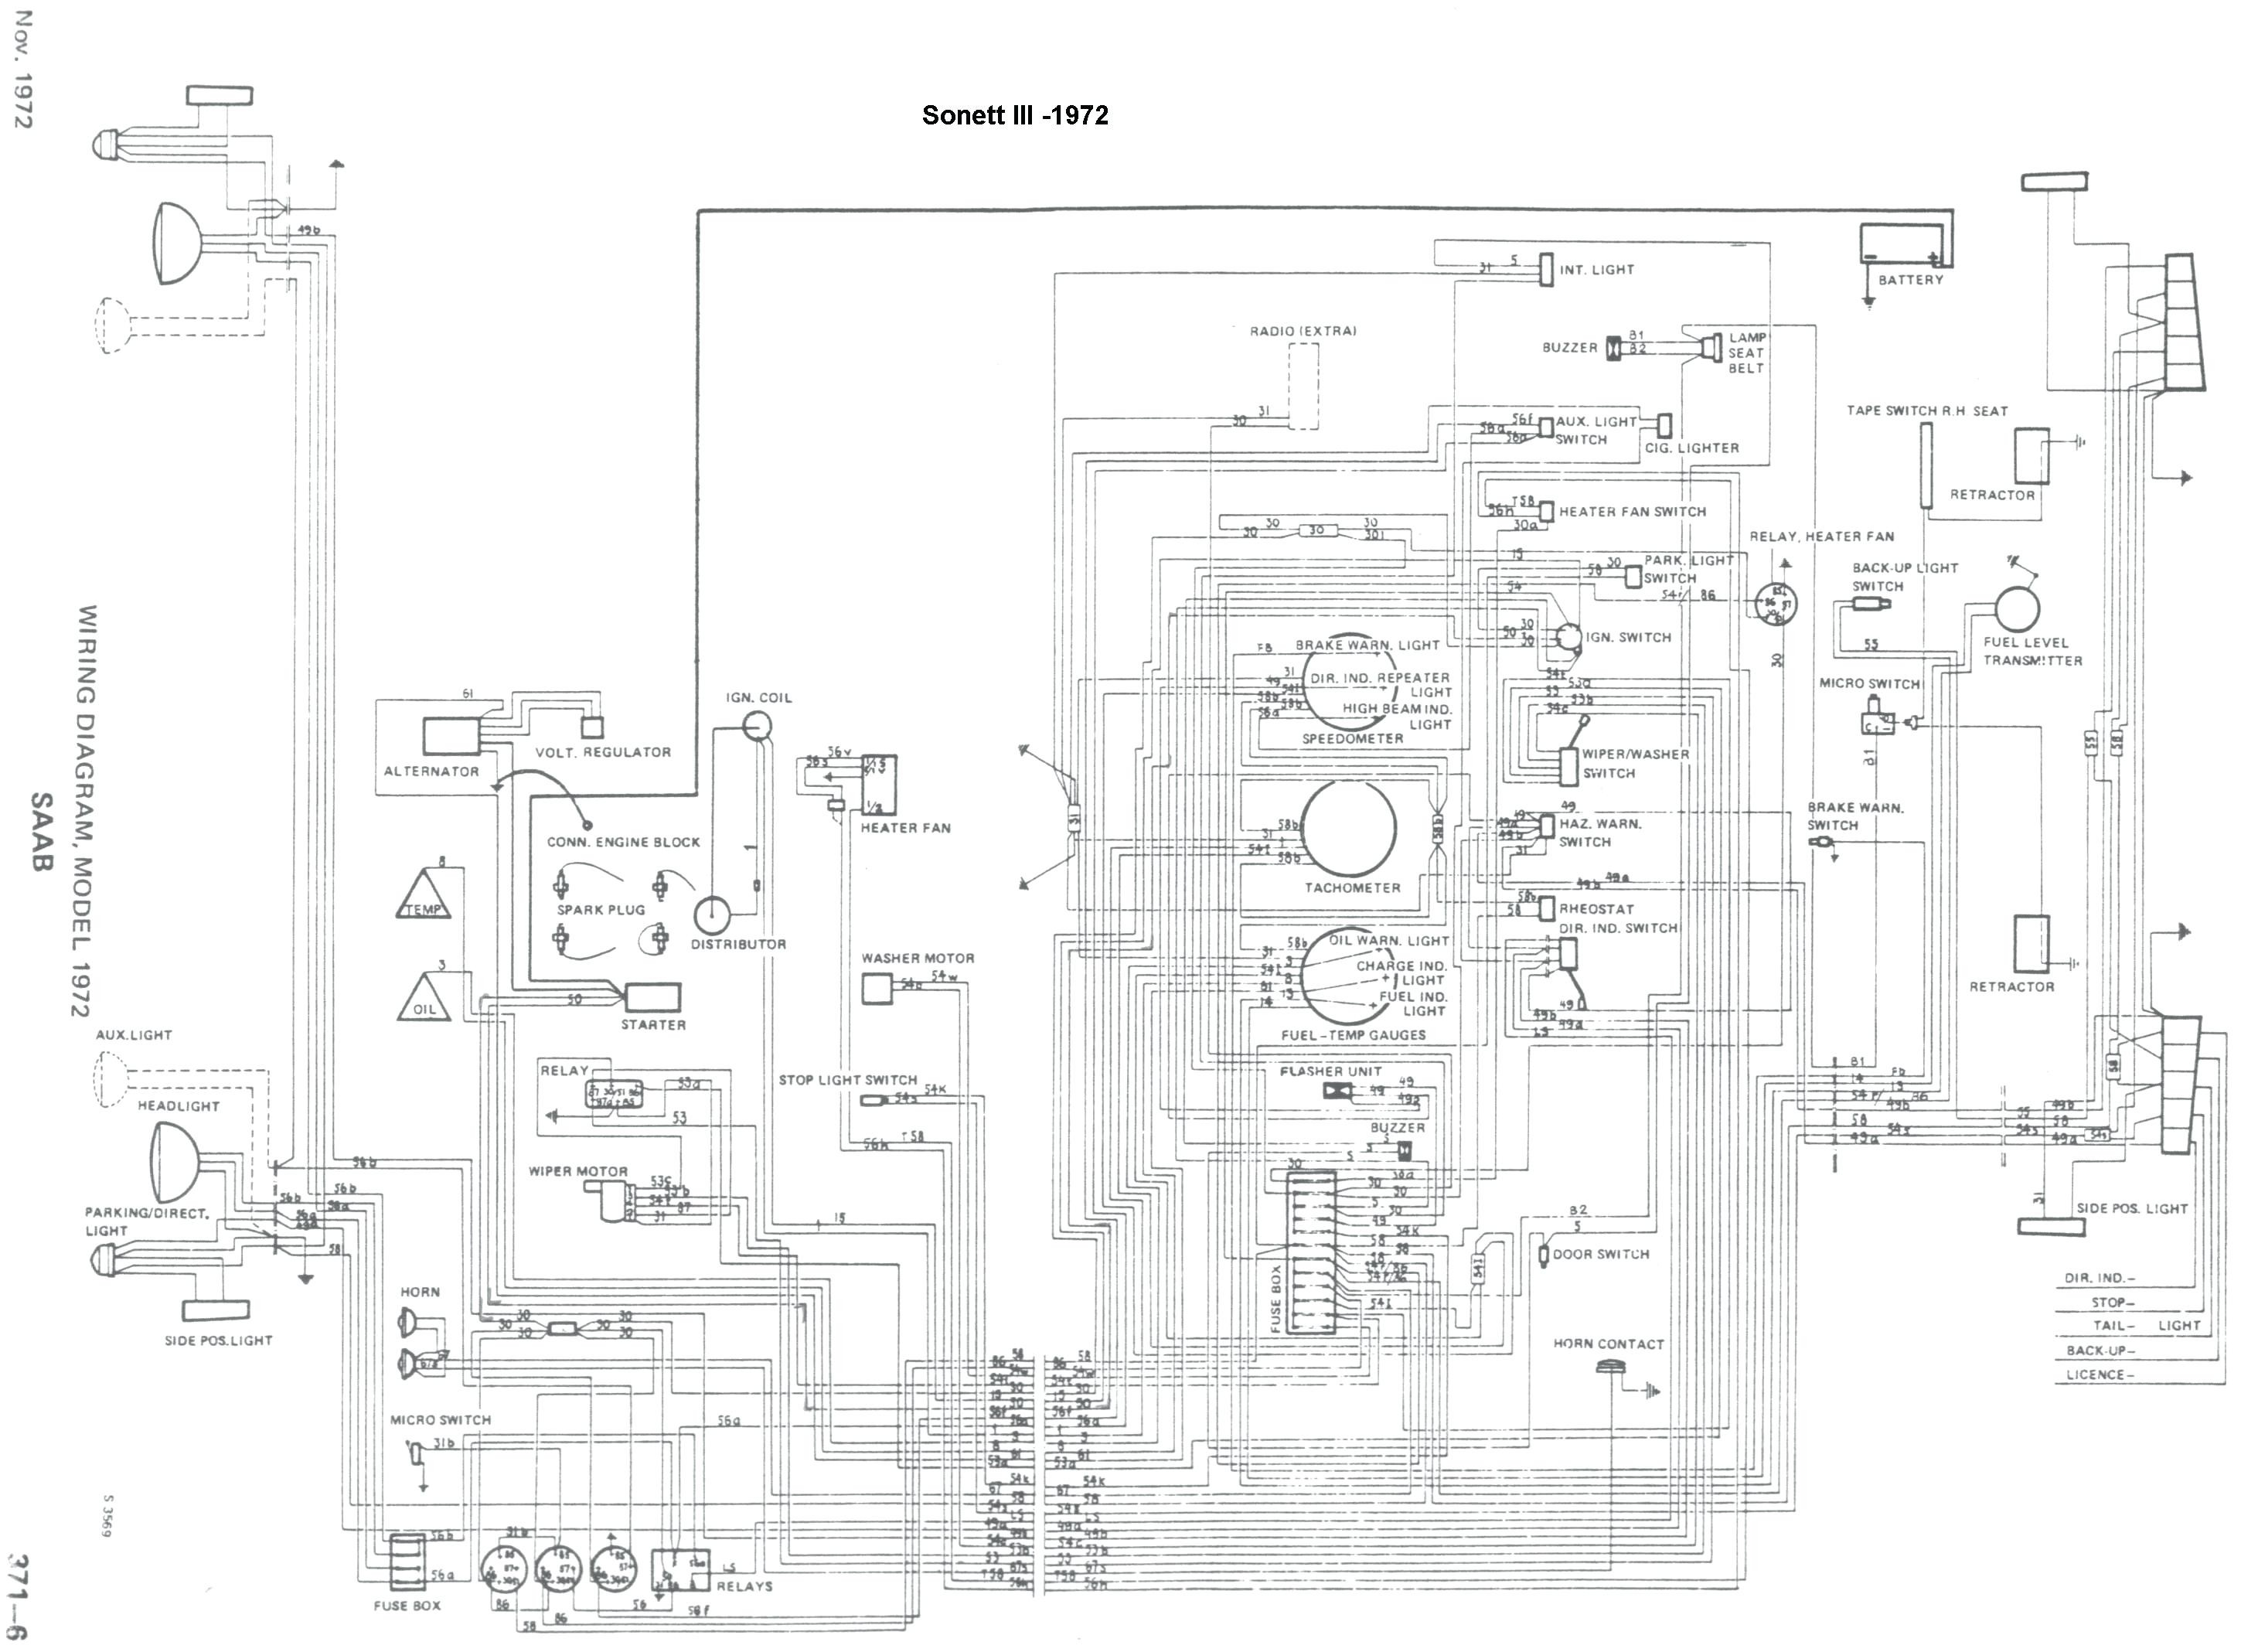 Saab Oil Line Diagram Saab Circuit Diagrams - Wire Data Schema •